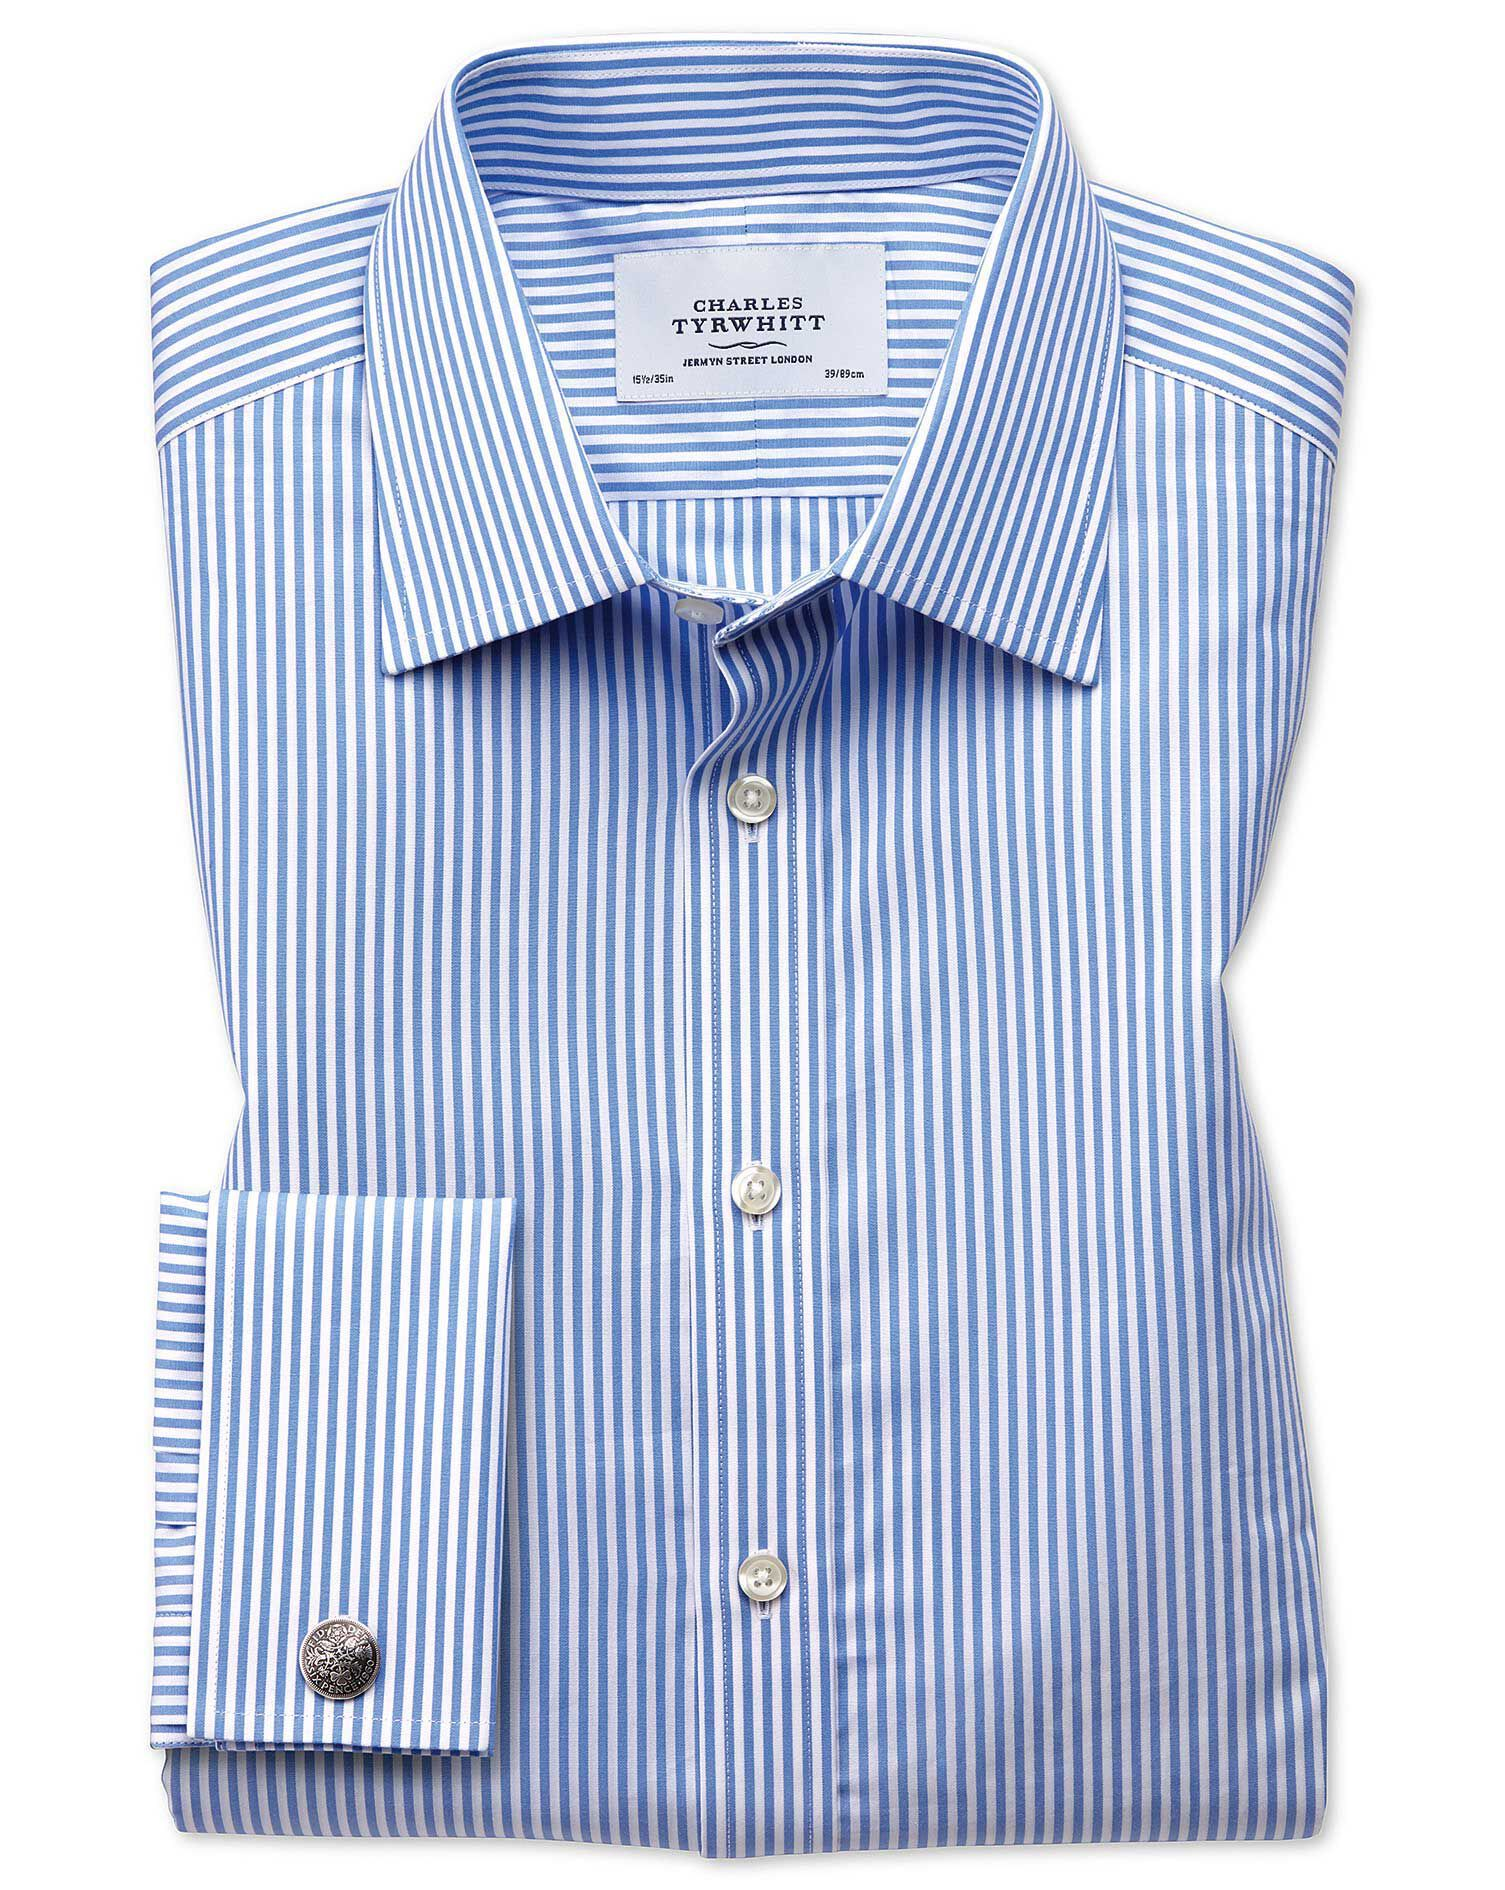 Extra Slim Fit Bengal Stripe Sky Blue Cotton Formal Shirt Double Cuff Size 17/33 by Charles Tyrwhitt